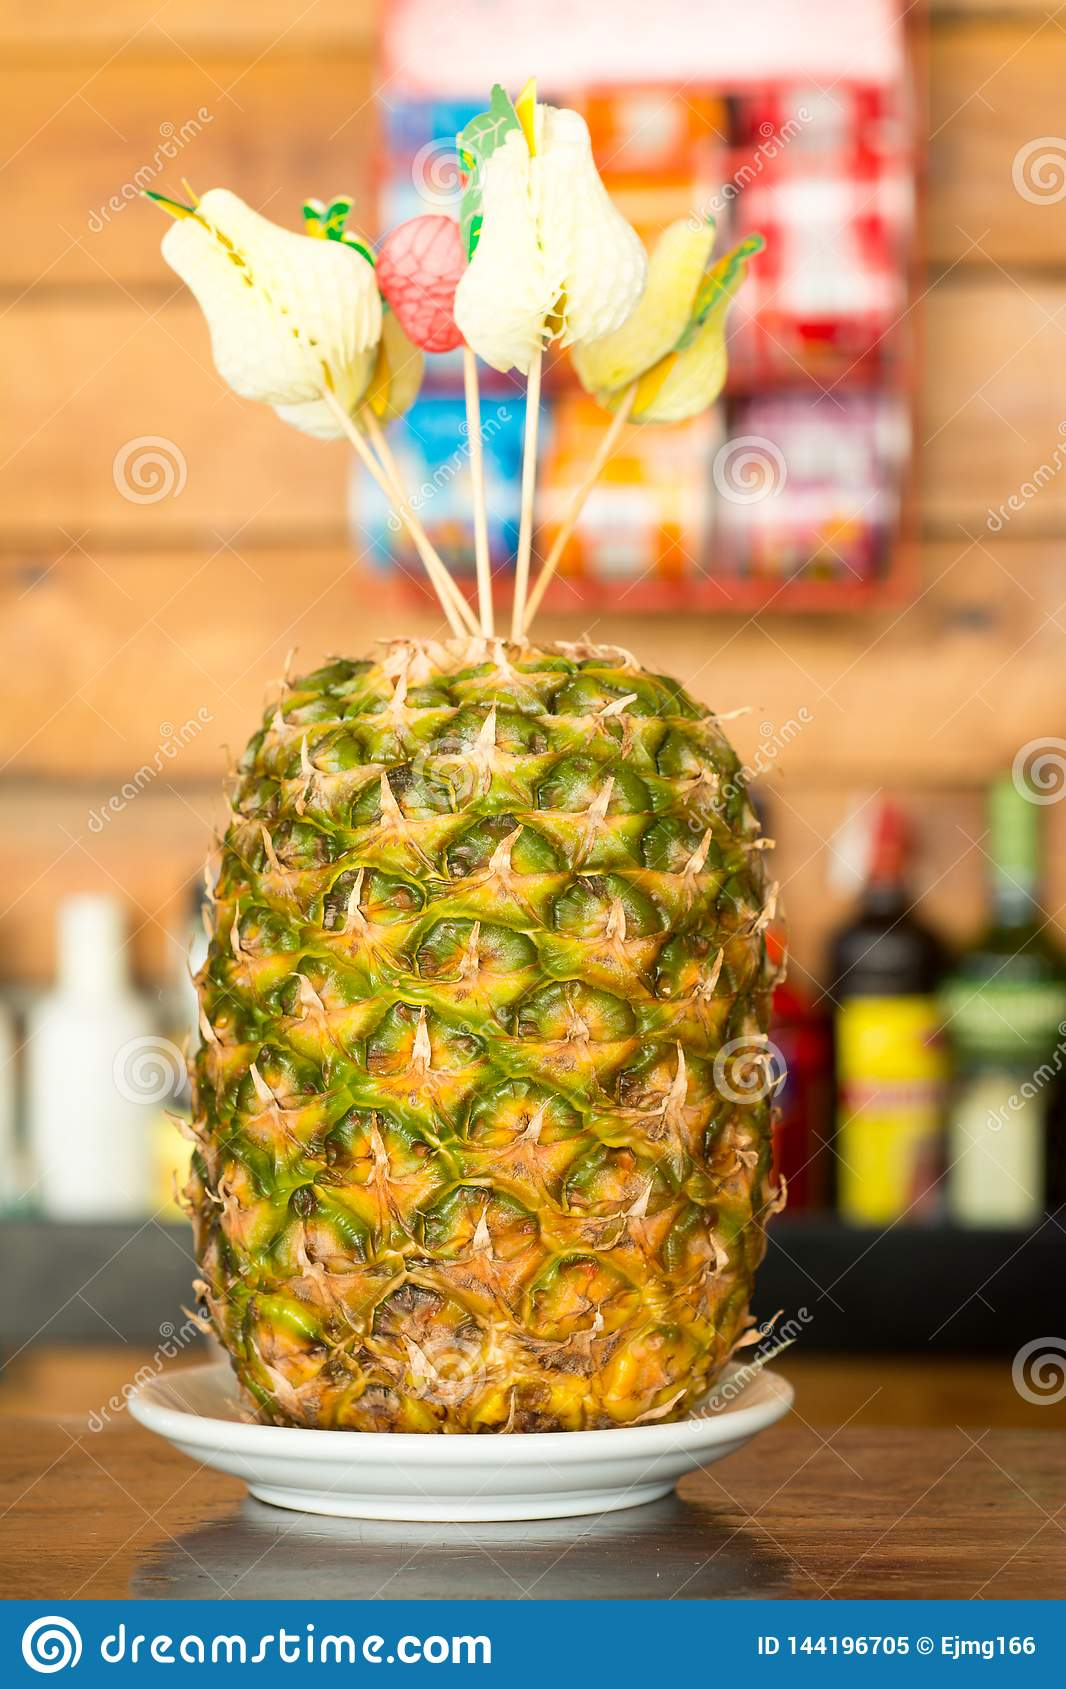 Pineapple ready to be cutted